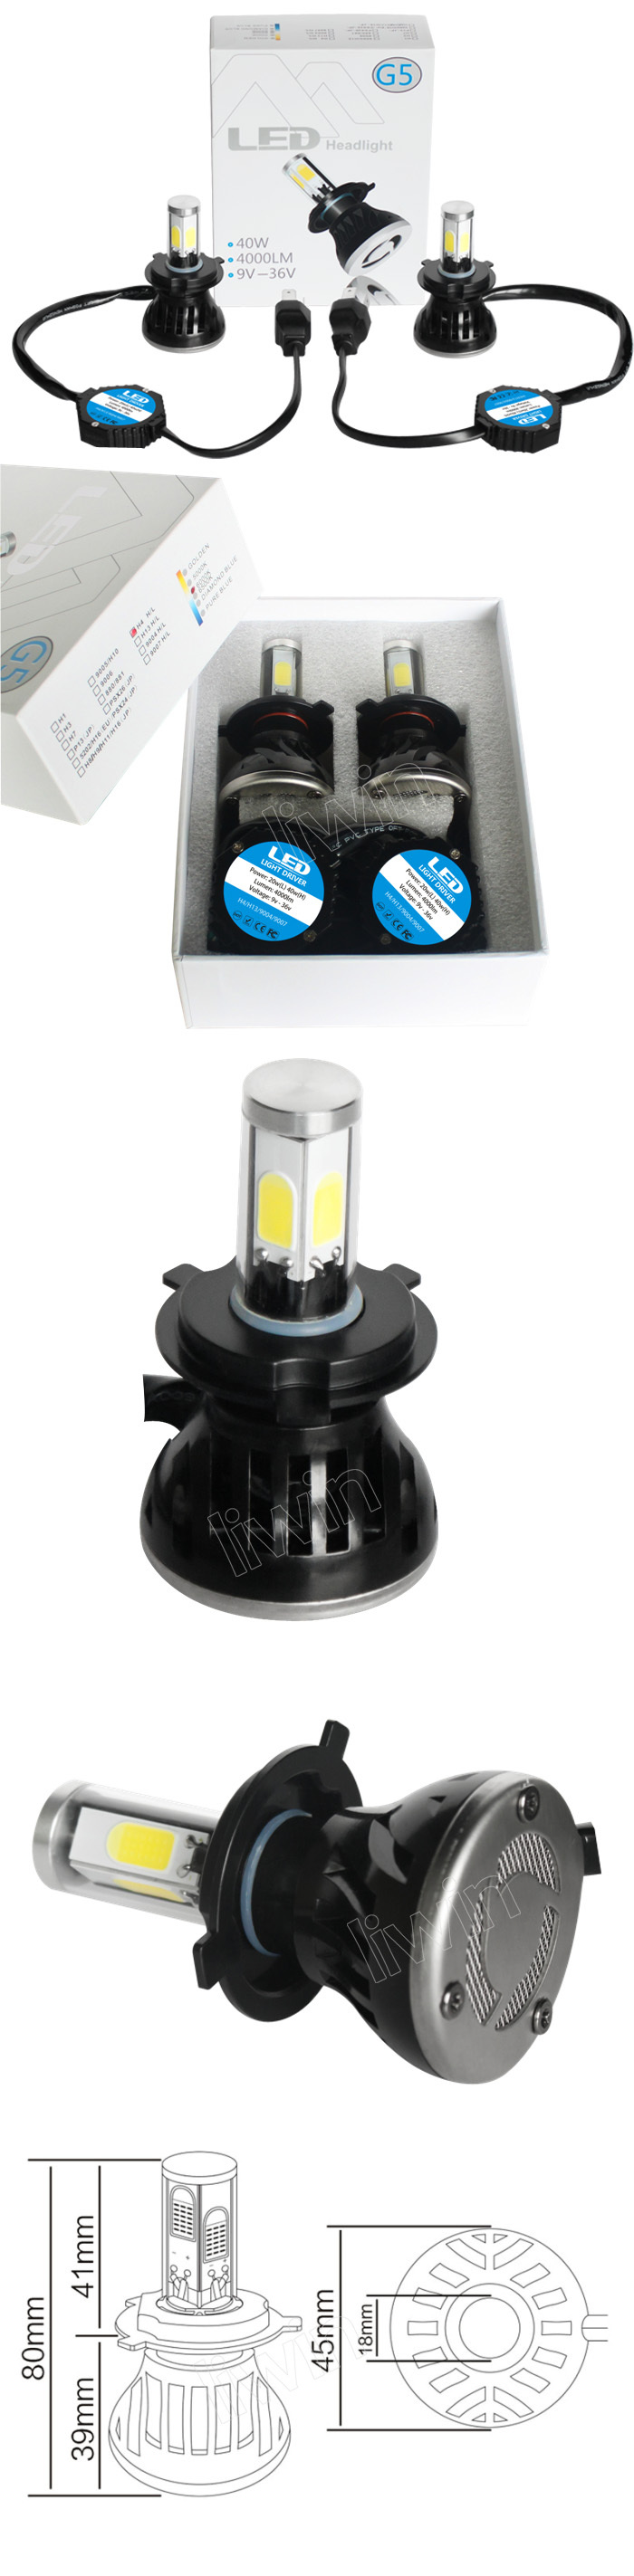 LW LH21-H4 9-36V 40W 4000lm 4side light fog lamp kit.jpg